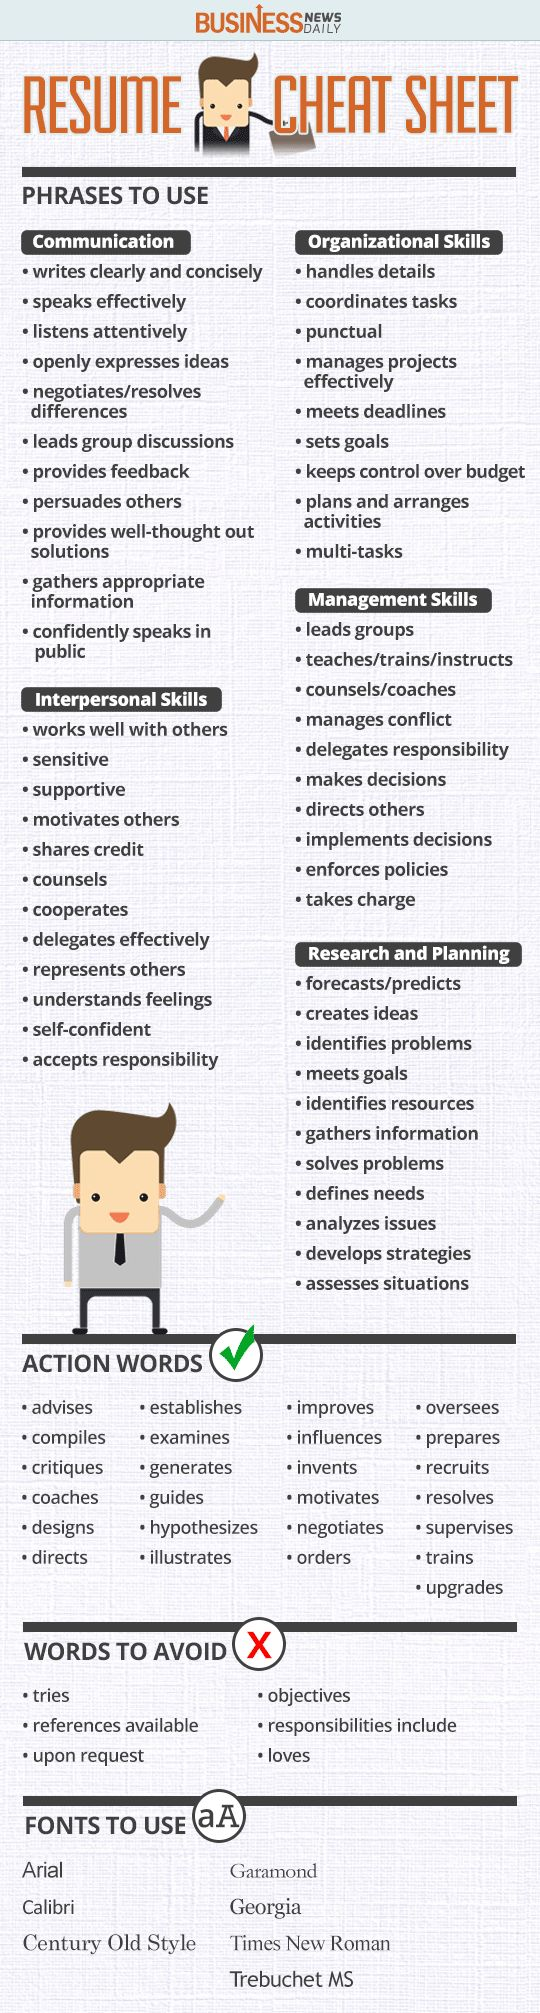 Opposenewapstandardsus  Outstanding  Ideas About Resume On Pinterest  Cv Format Resume Cv And  With Inspiring Resume Cheat Sheet Infographic Andrews Almost Done With A Complete Unit On Employment Which With Extraordinary Post Resume On Craigslist Also Sample Hospitality Resume In Addition Real Estate Attorney Resume And How To Write A Skills Resume As Well As Baseball Resume Additionally Employment History On Resume From Pinterestcom With Opposenewapstandardsus  Inspiring  Ideas About Resume On Pinterest  Cv Format Resume Cv And  With Extraordinary Resume Cheat Sheet Infographic Andrews Almost Done With A Complete Unit On Employment Which And Outstanding Post Resume On Craigslist Also Sample Hospitality Resume In Addition Real Estate Attorney Resume From Pinterestcom